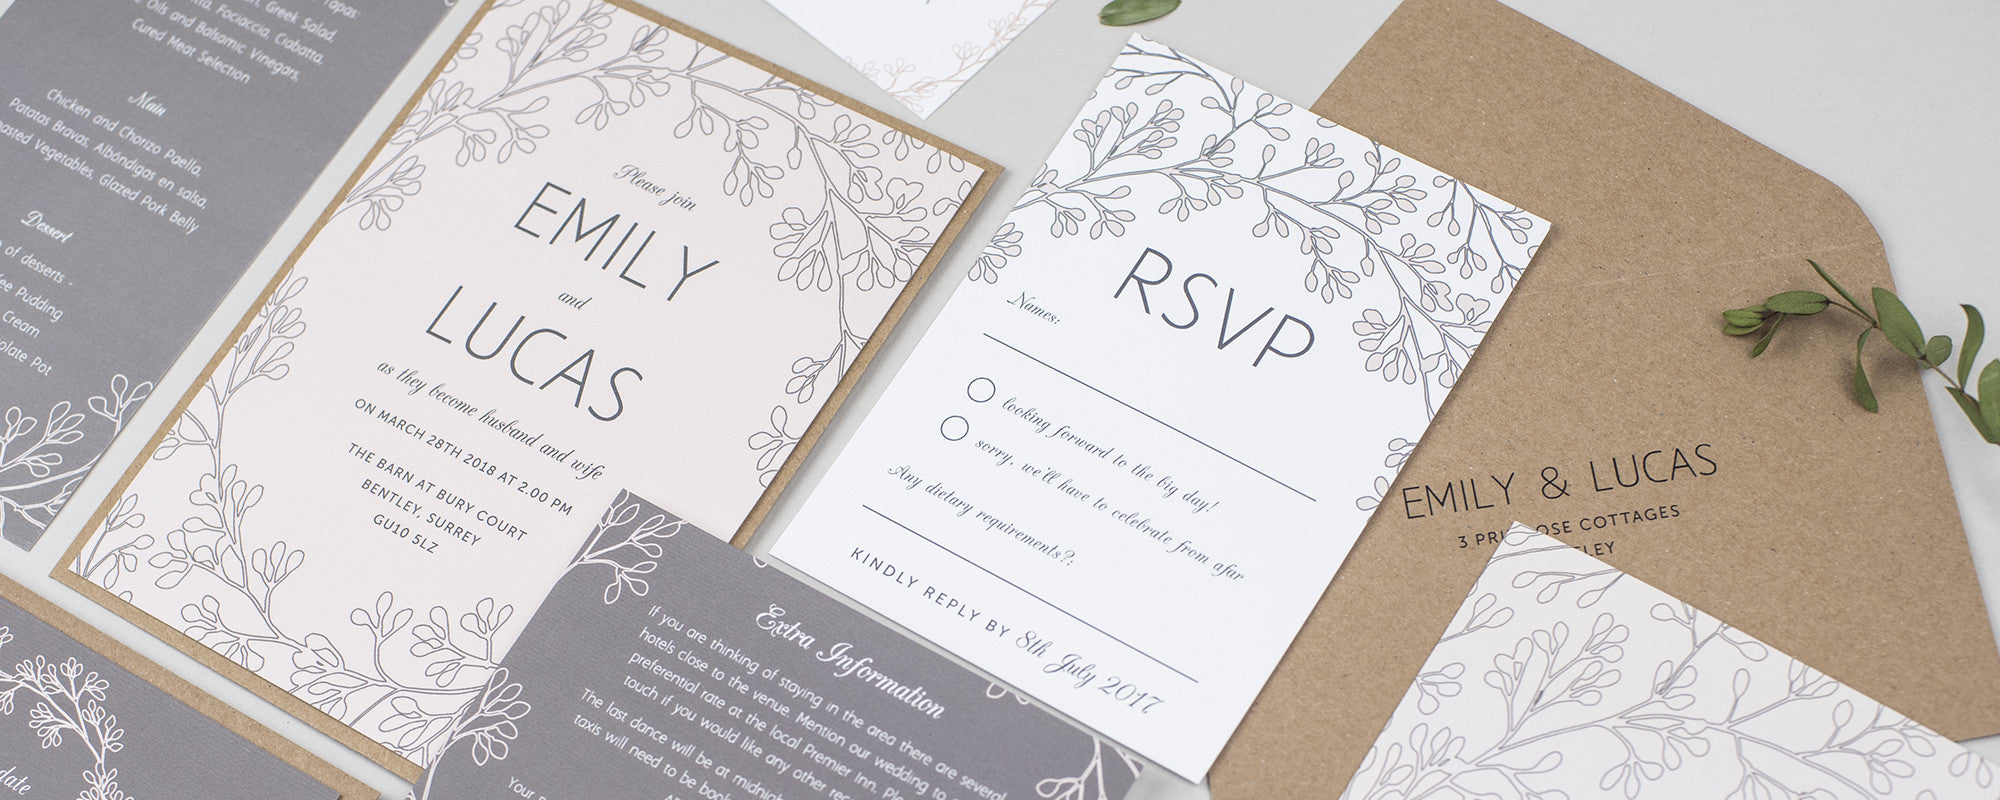 Pear Paper Co Wedding Stationery